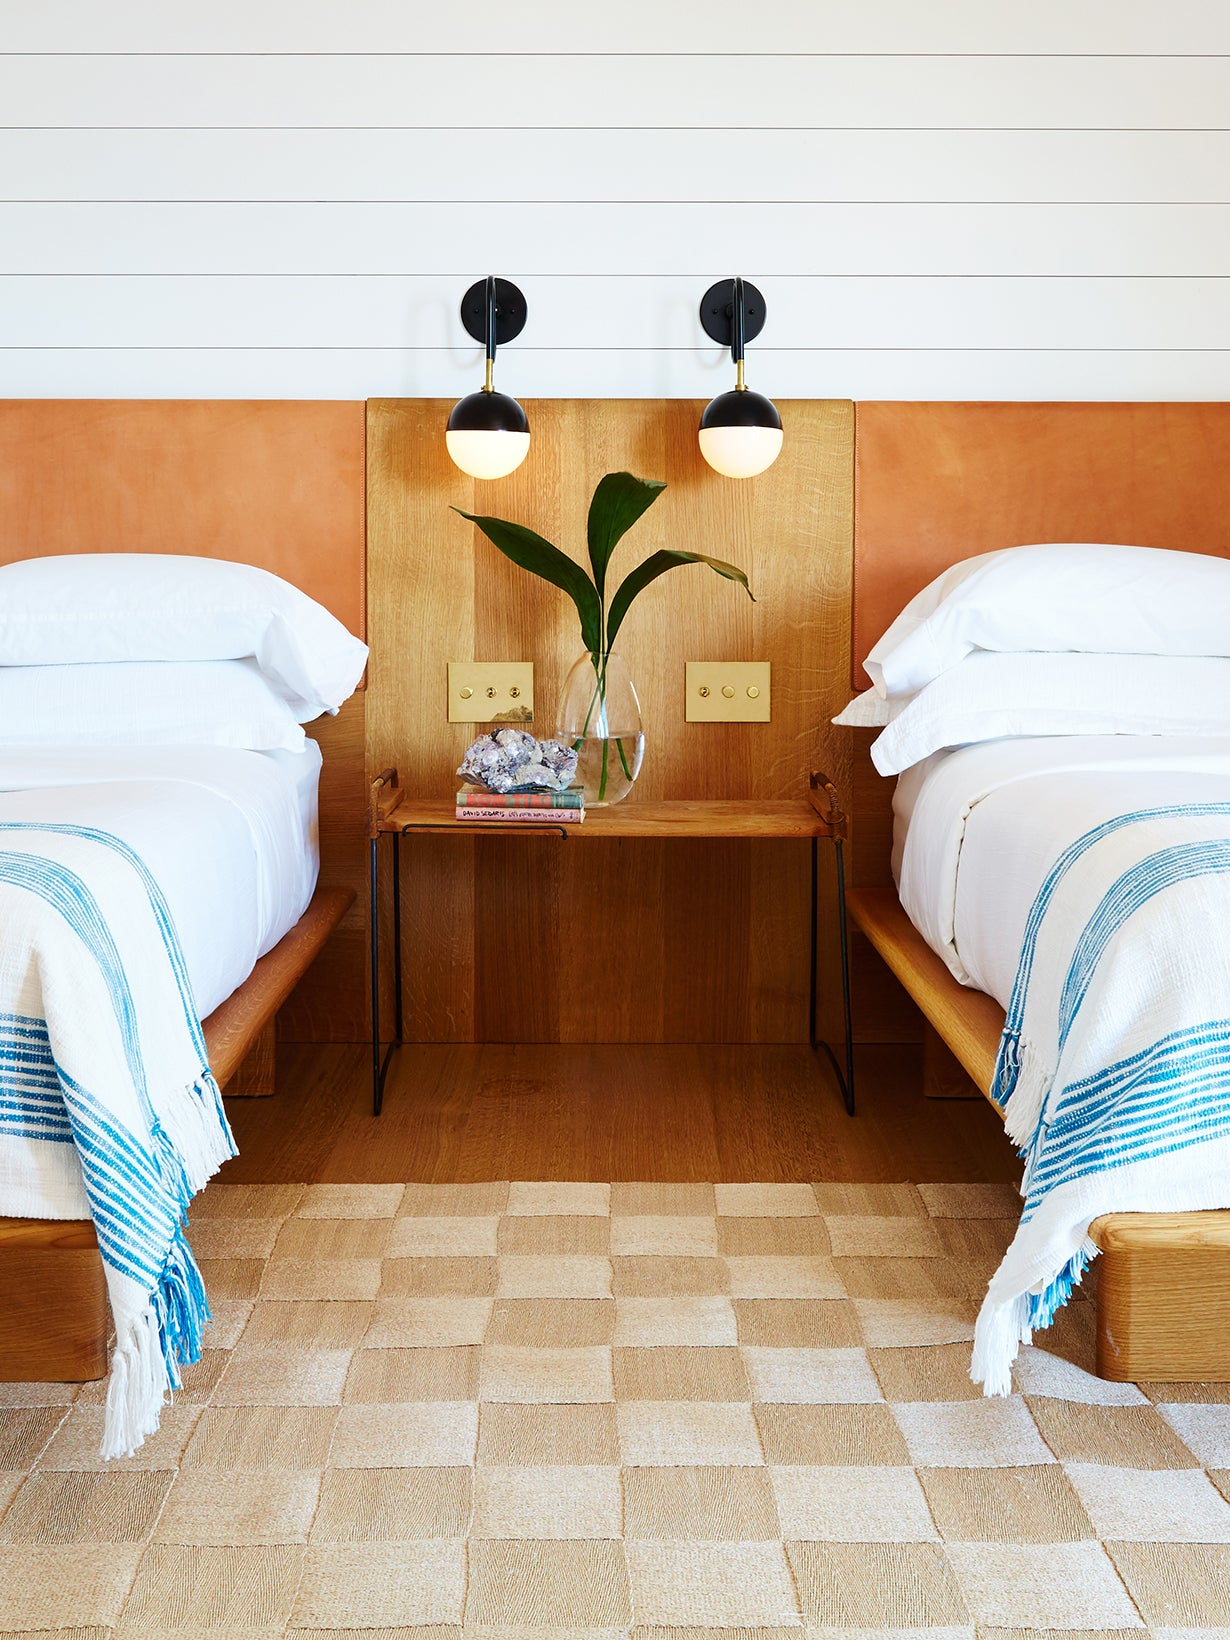 Bedroom with two beds sharing one long headboard